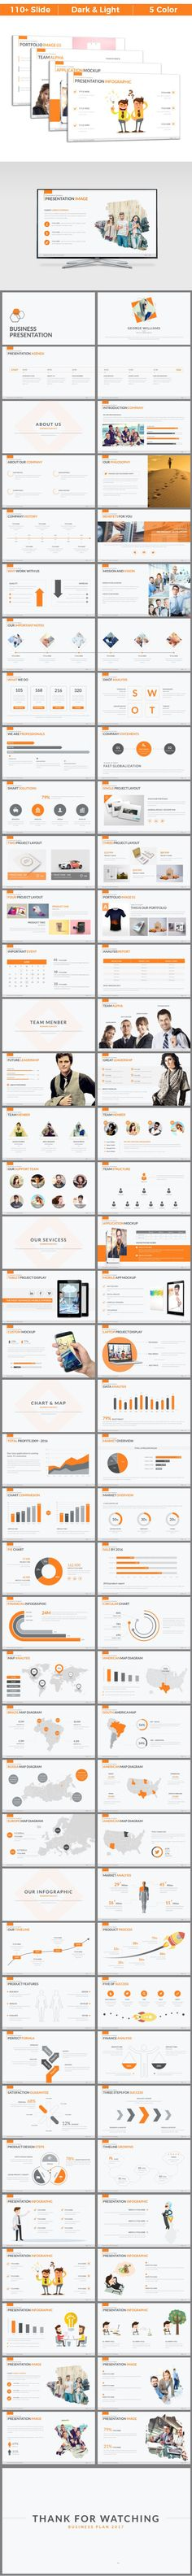 Business Plan 2017 Presentation Templates